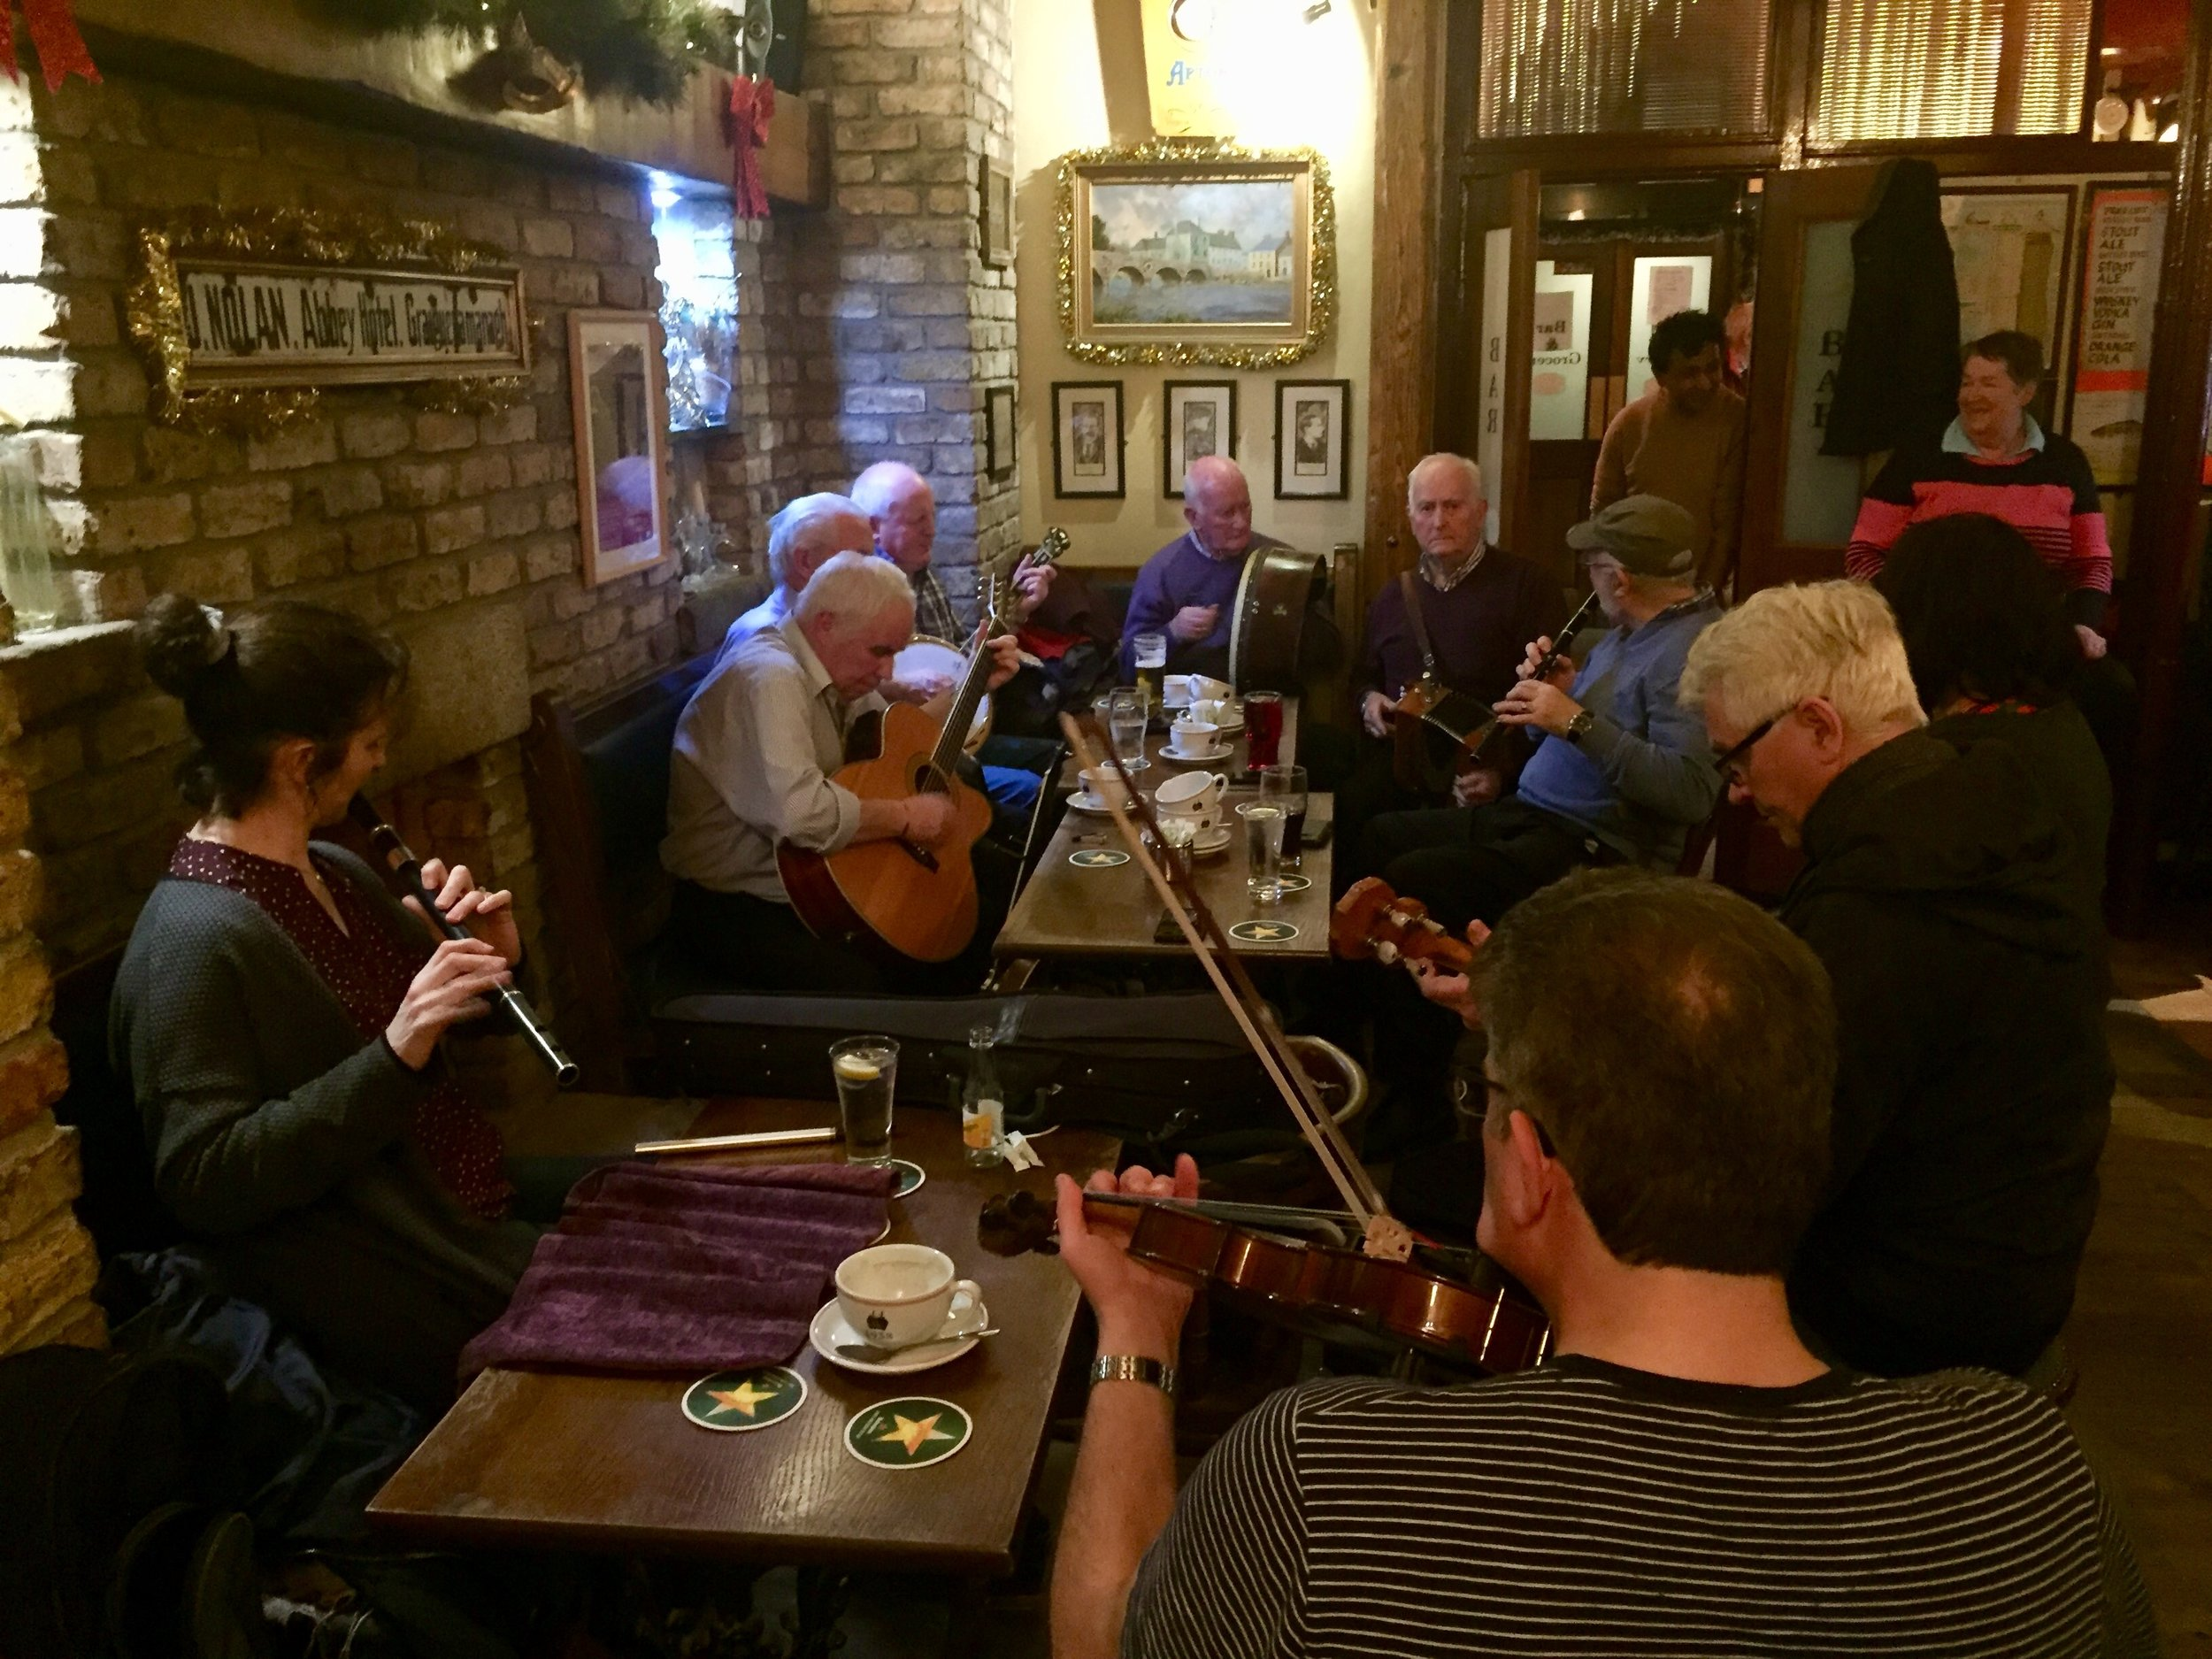 Traditional Irish music session at Mick Doyle's in Graiguenamanagh